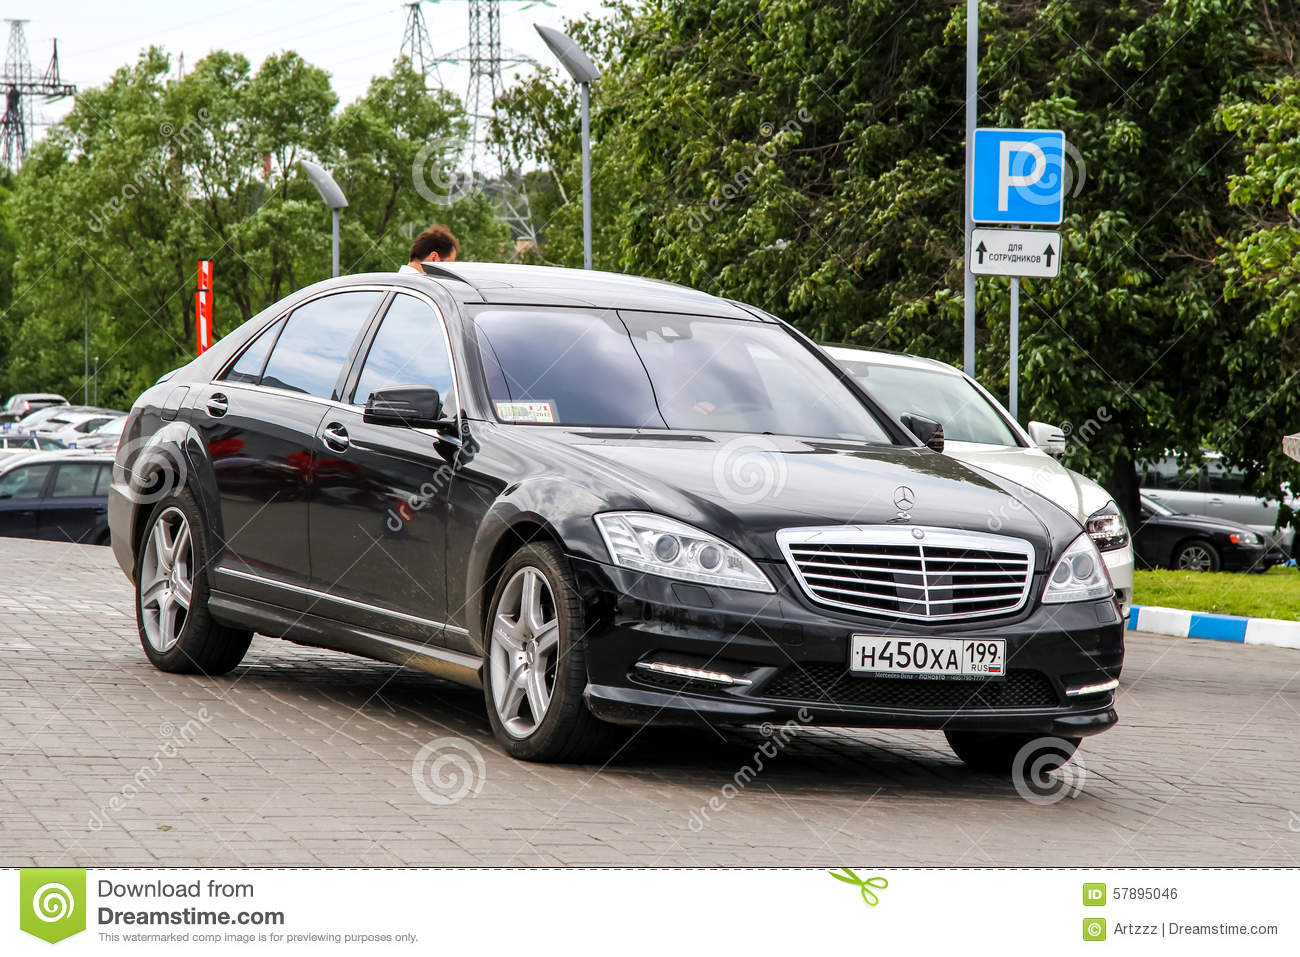 Mercedes Benz W221 S Class Editorial Photo Image 57895046